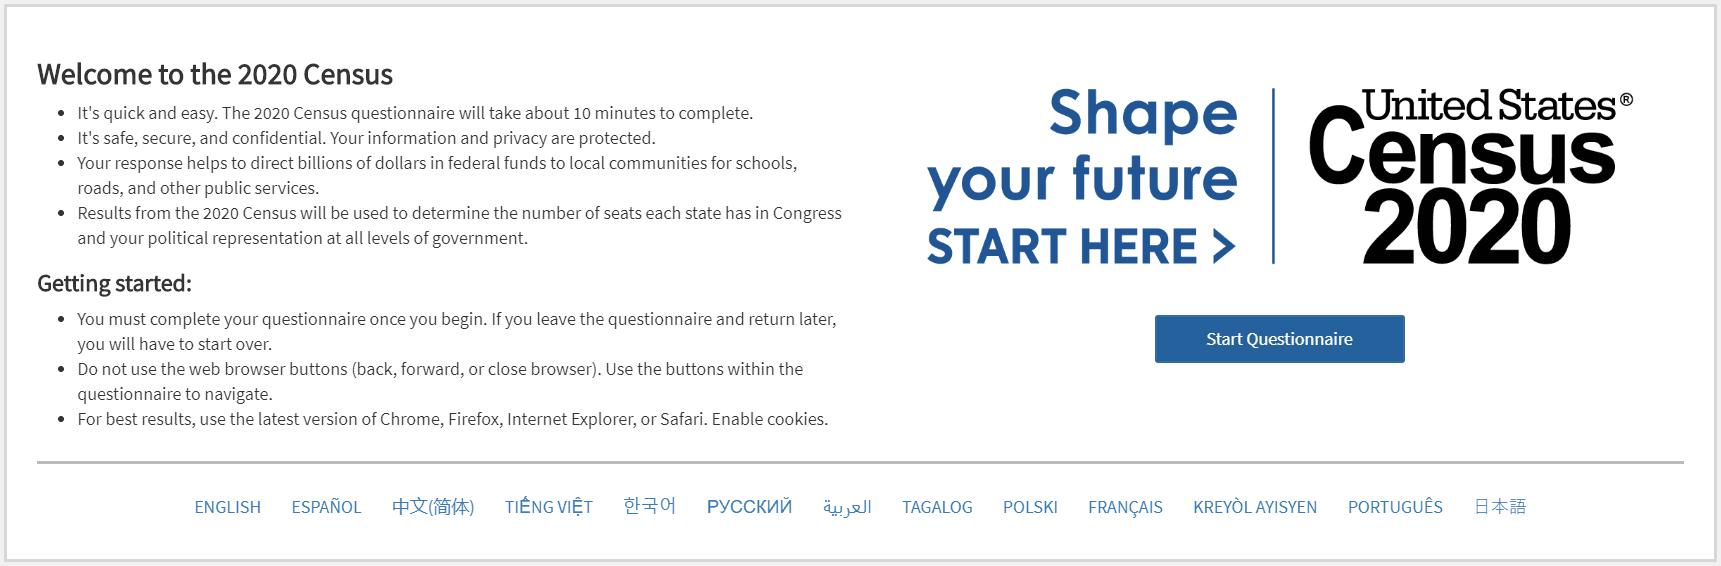 Census 2020 Shape your future START HERE Questionnaire Opens in new window